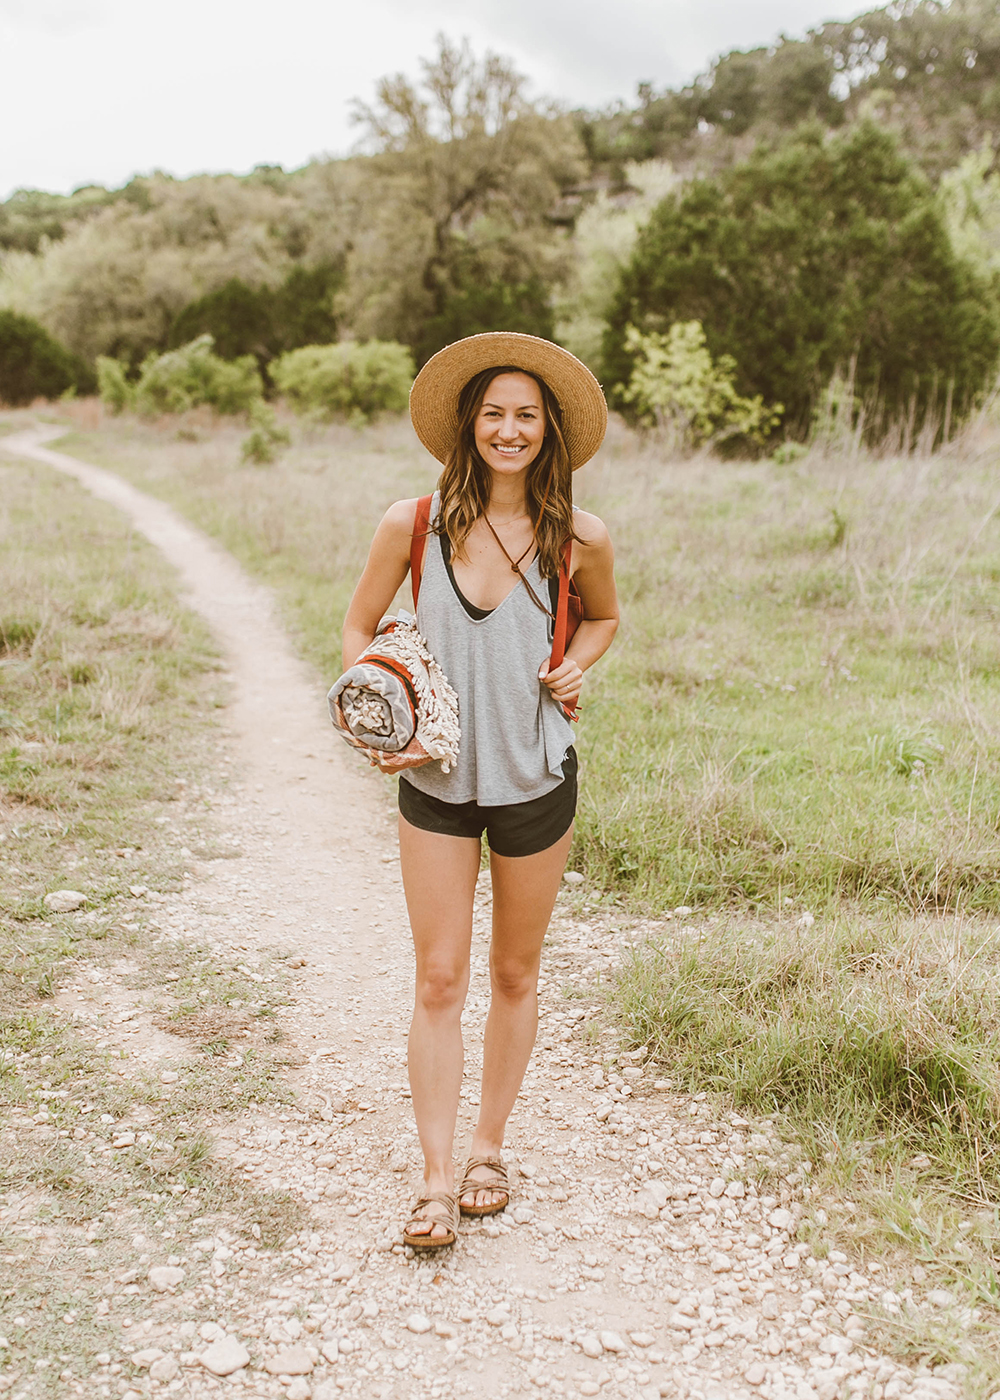 livvyland-blog-olivia-watson-backcountry-l-space-black-one-piece-swimsuit-austin-texas-greenbelt-5